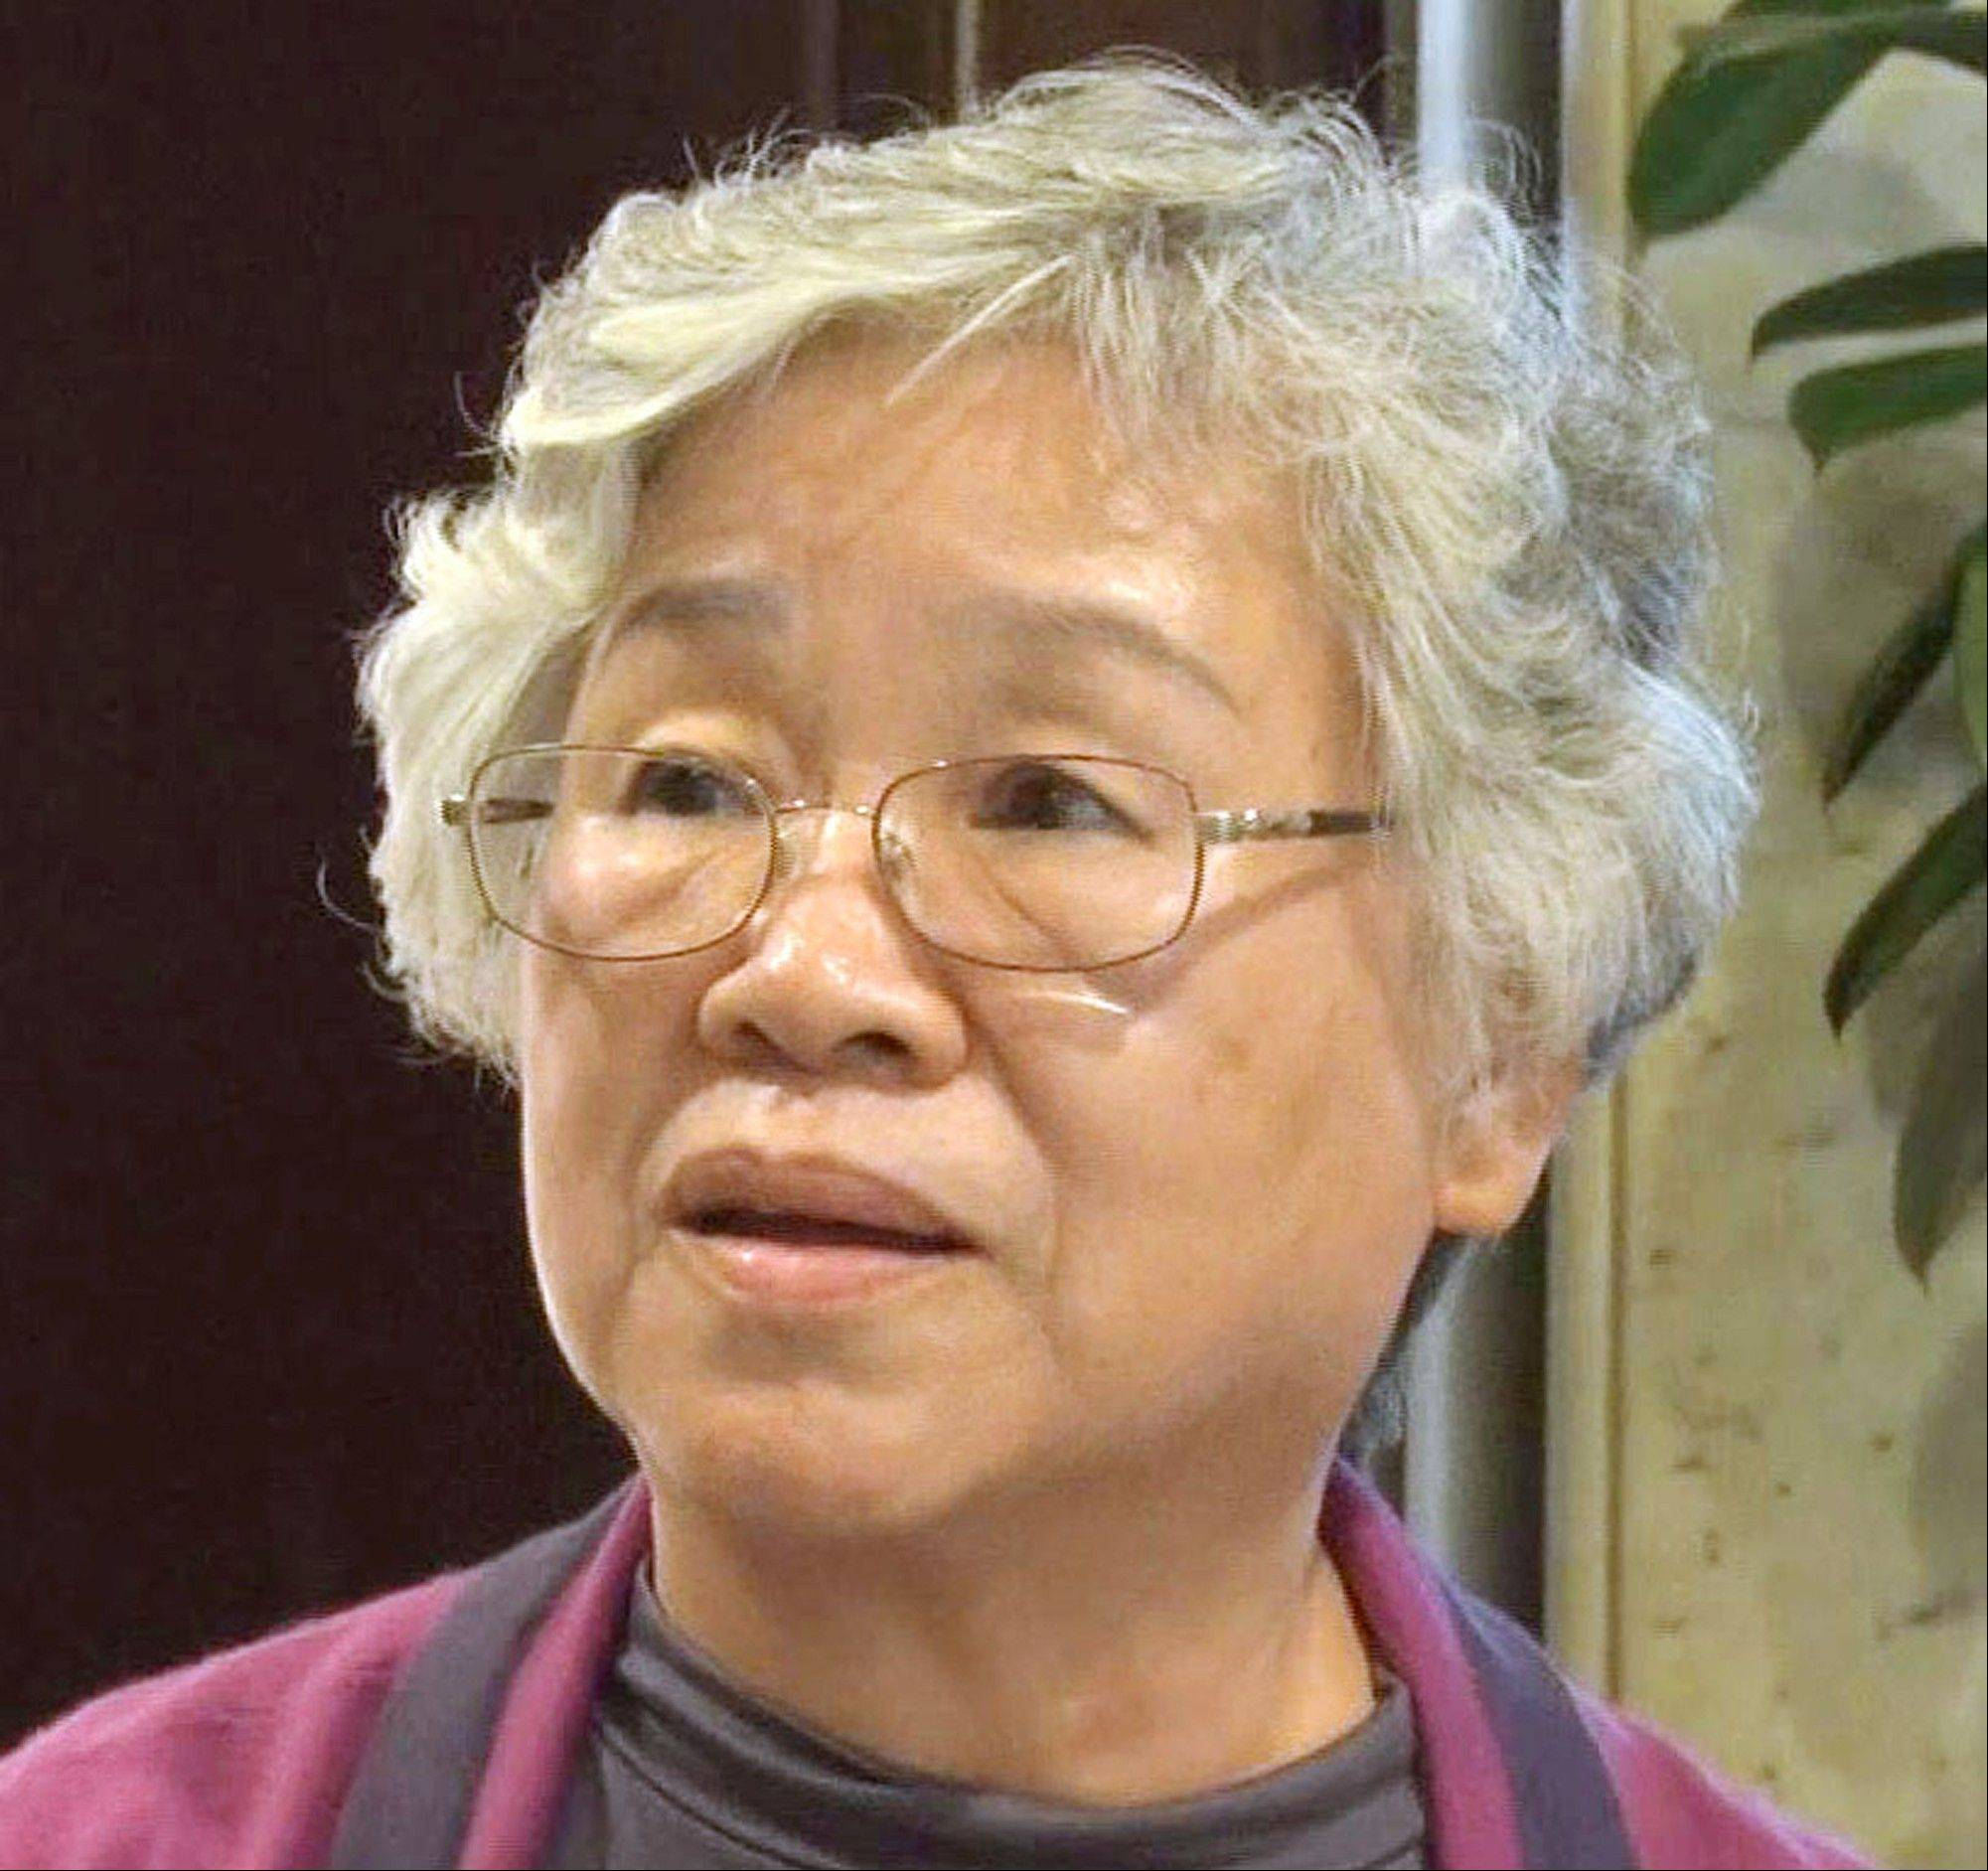 Myunghee Bae, who has been allowed into North Korea to see her son, Kenneth, a Korean-American Christian missionary, told Japan�s Kyodo News agency that his health has been improving since he was transferred to a hospital from a prison where he was serving out a sentence of 15 years hard labor.